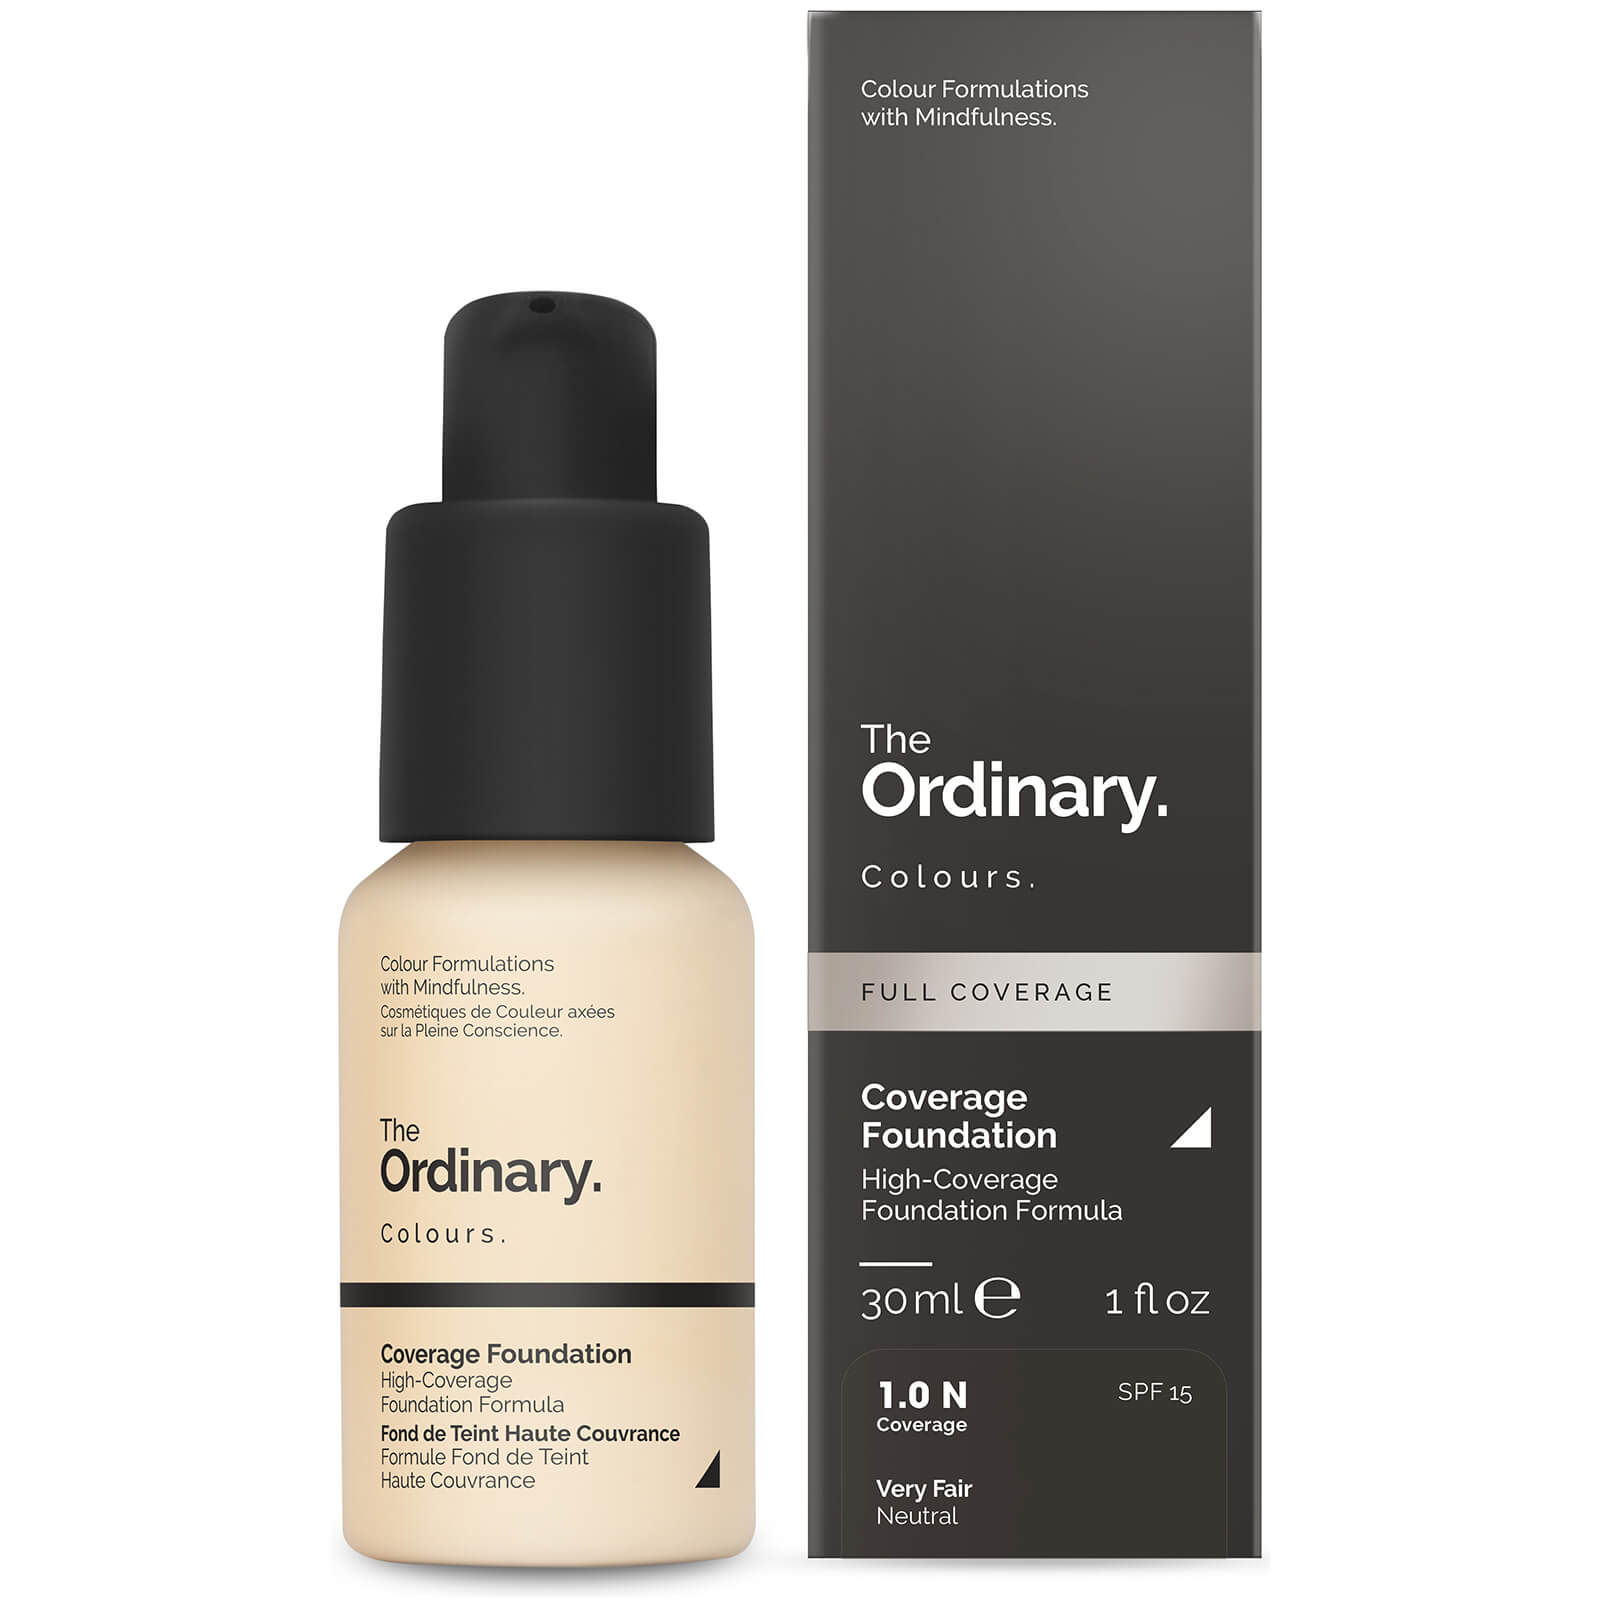 The Ordinary Coverage Foundation with SPF 15 by The Ordinary Colours 30ml (Various Shades) - 3.3N